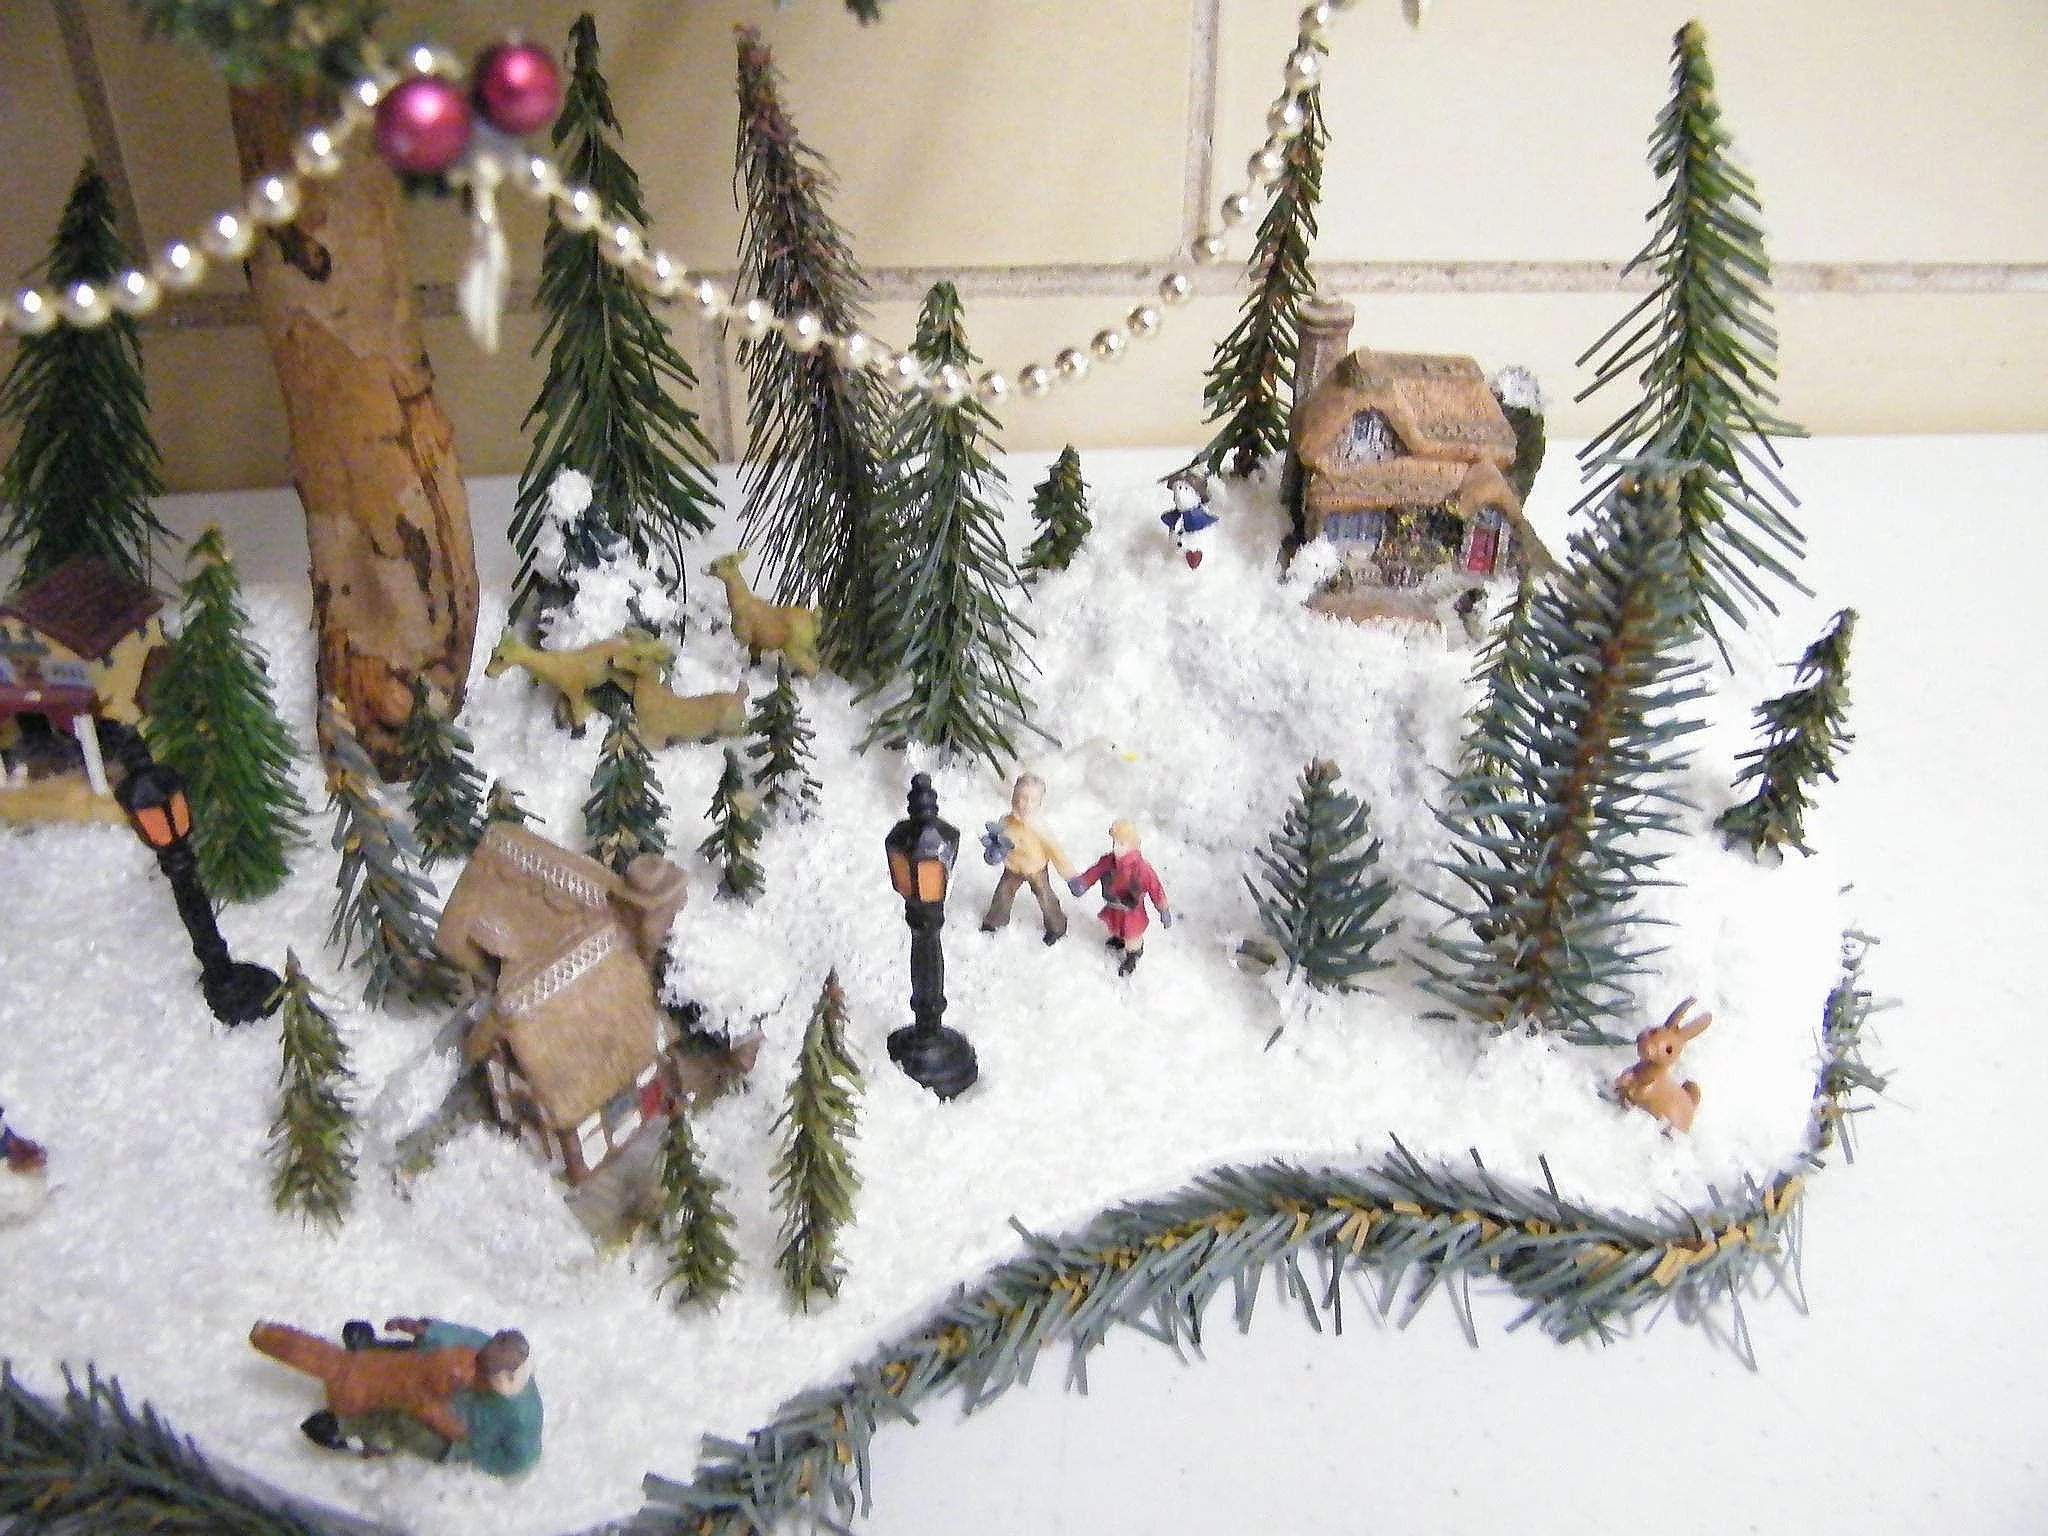 Folk Art Table Top Christmas Tree With Winter Scene At